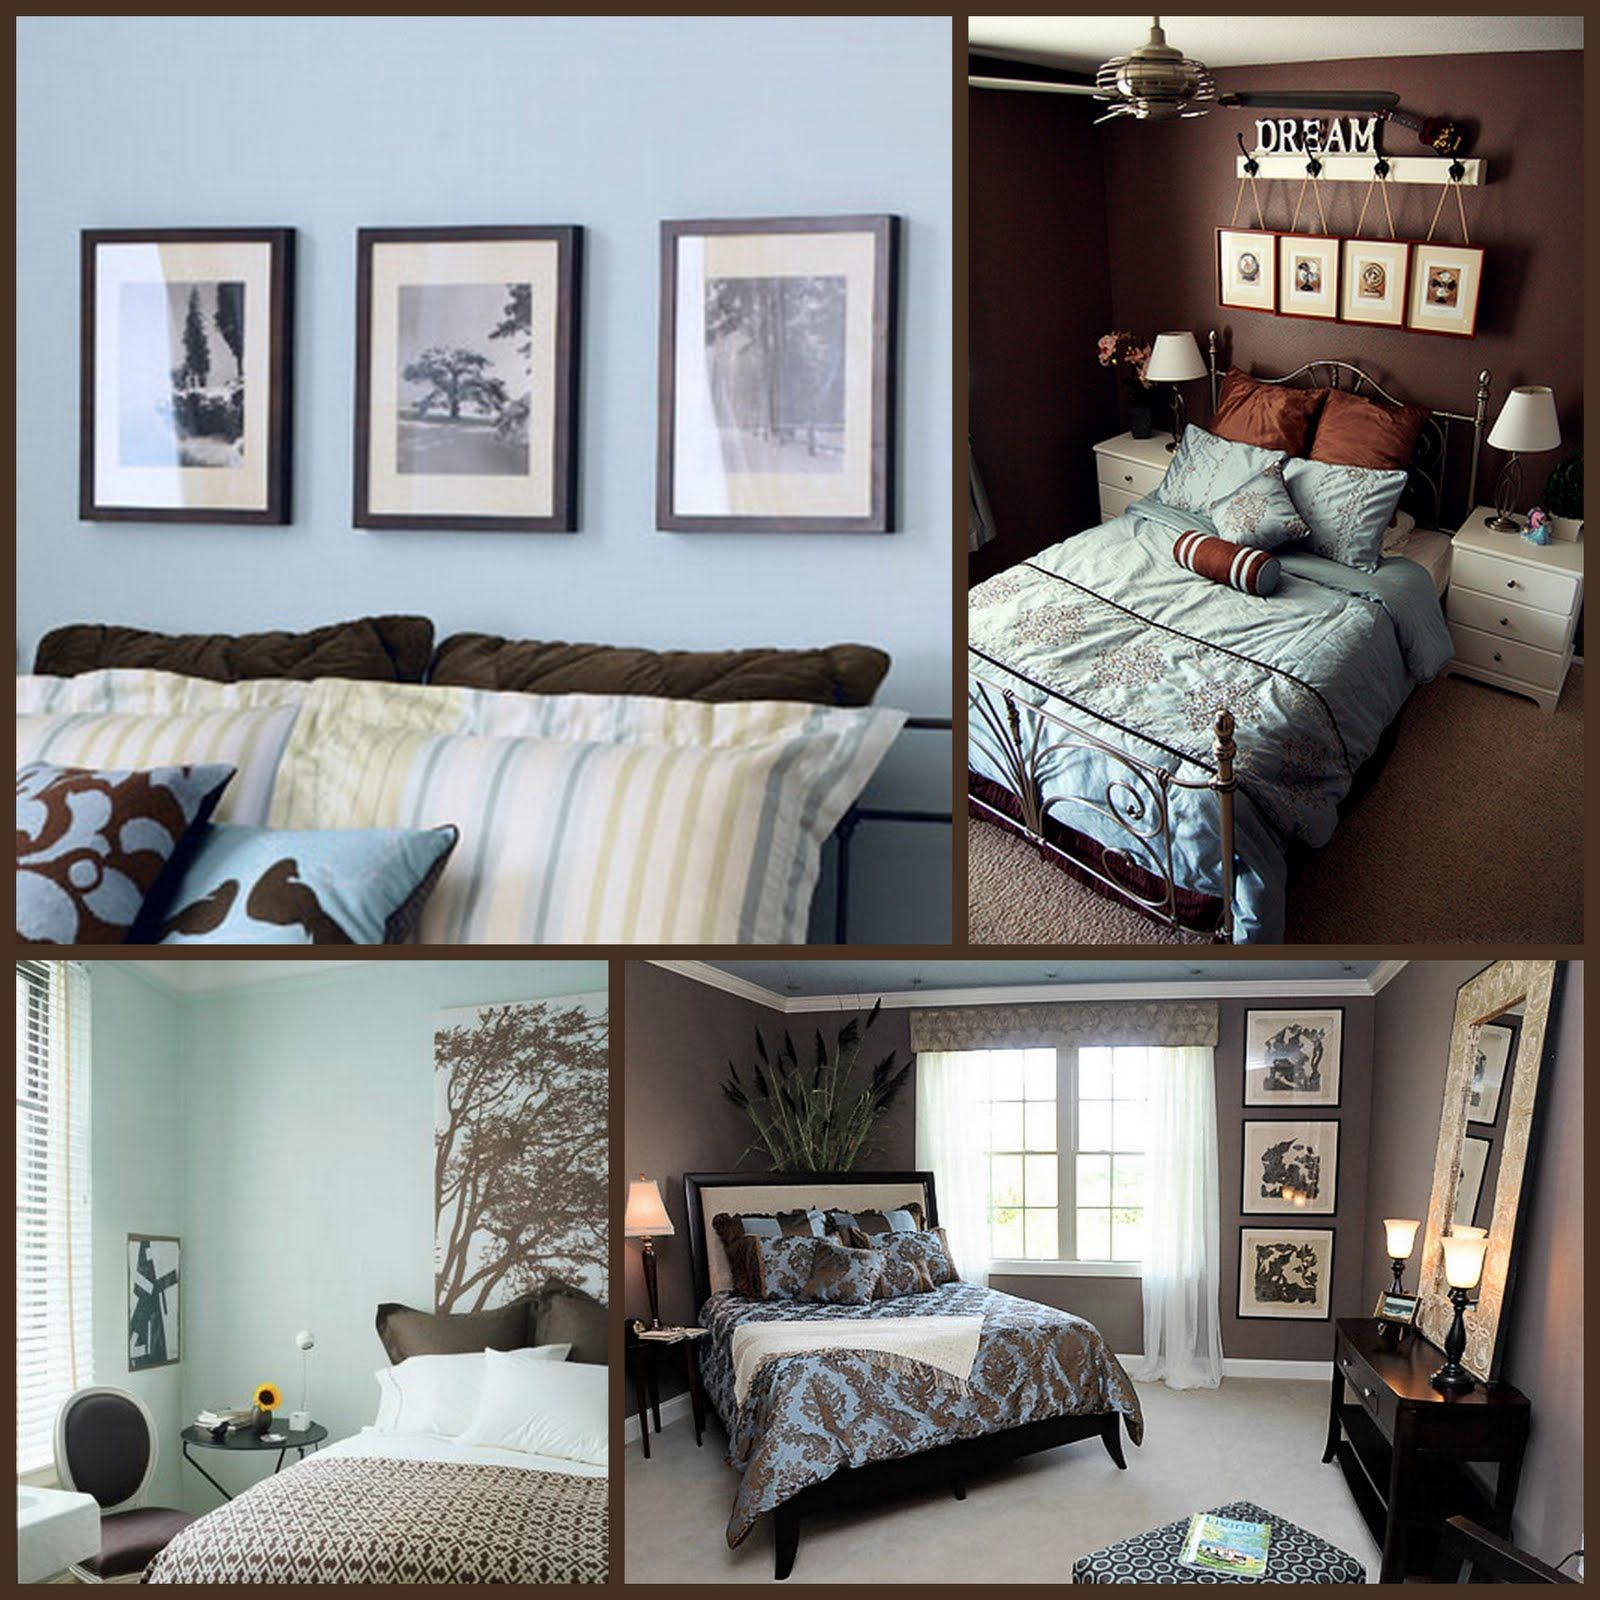 Duck Egg Blue And Brown Brown Bedroom Decor Bedroom Decor Dark Bedroom Decor